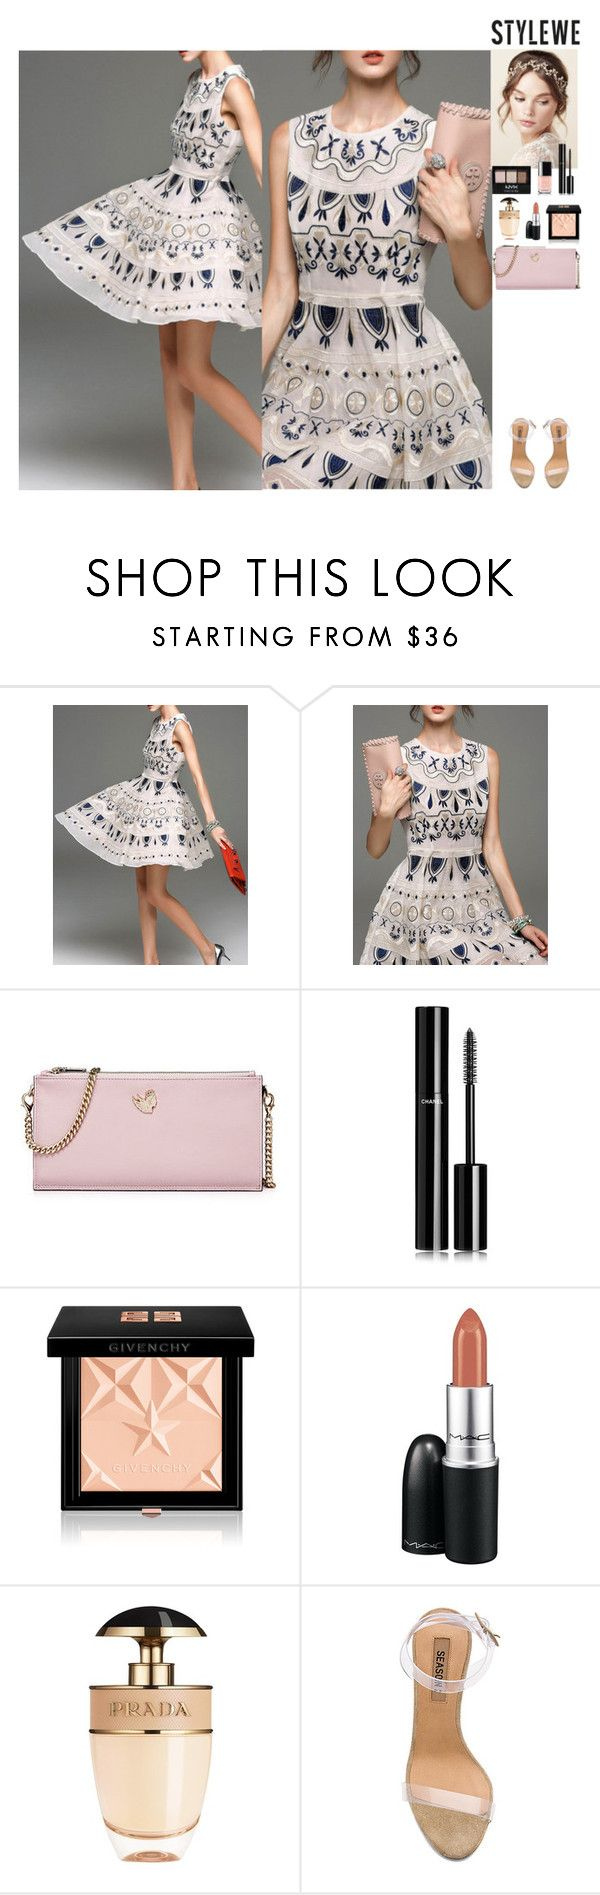 Outfit StyleWe by eliza-redkina on Polyvore featuring мода, YEEZY Season 2, Givenchy, MAC Cosmetics, Chanel, Prada, NYX, outfit, like and look